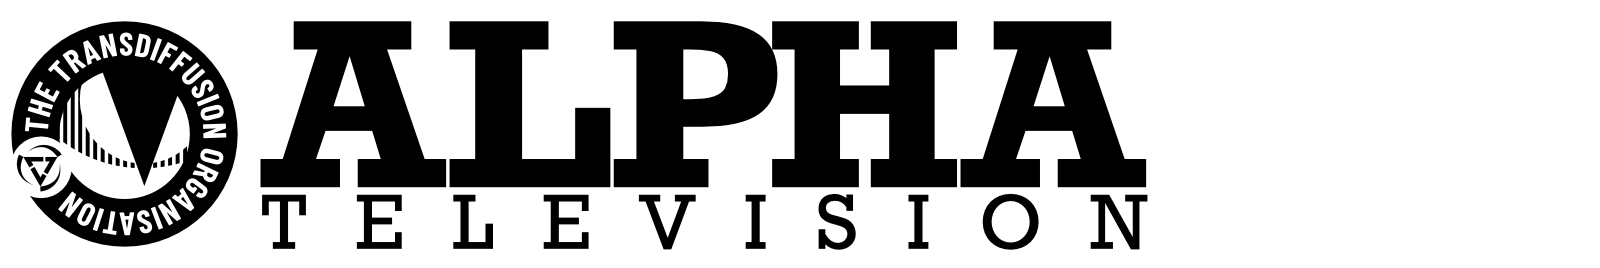 ALPHA TELEVISION from Transdiffusion